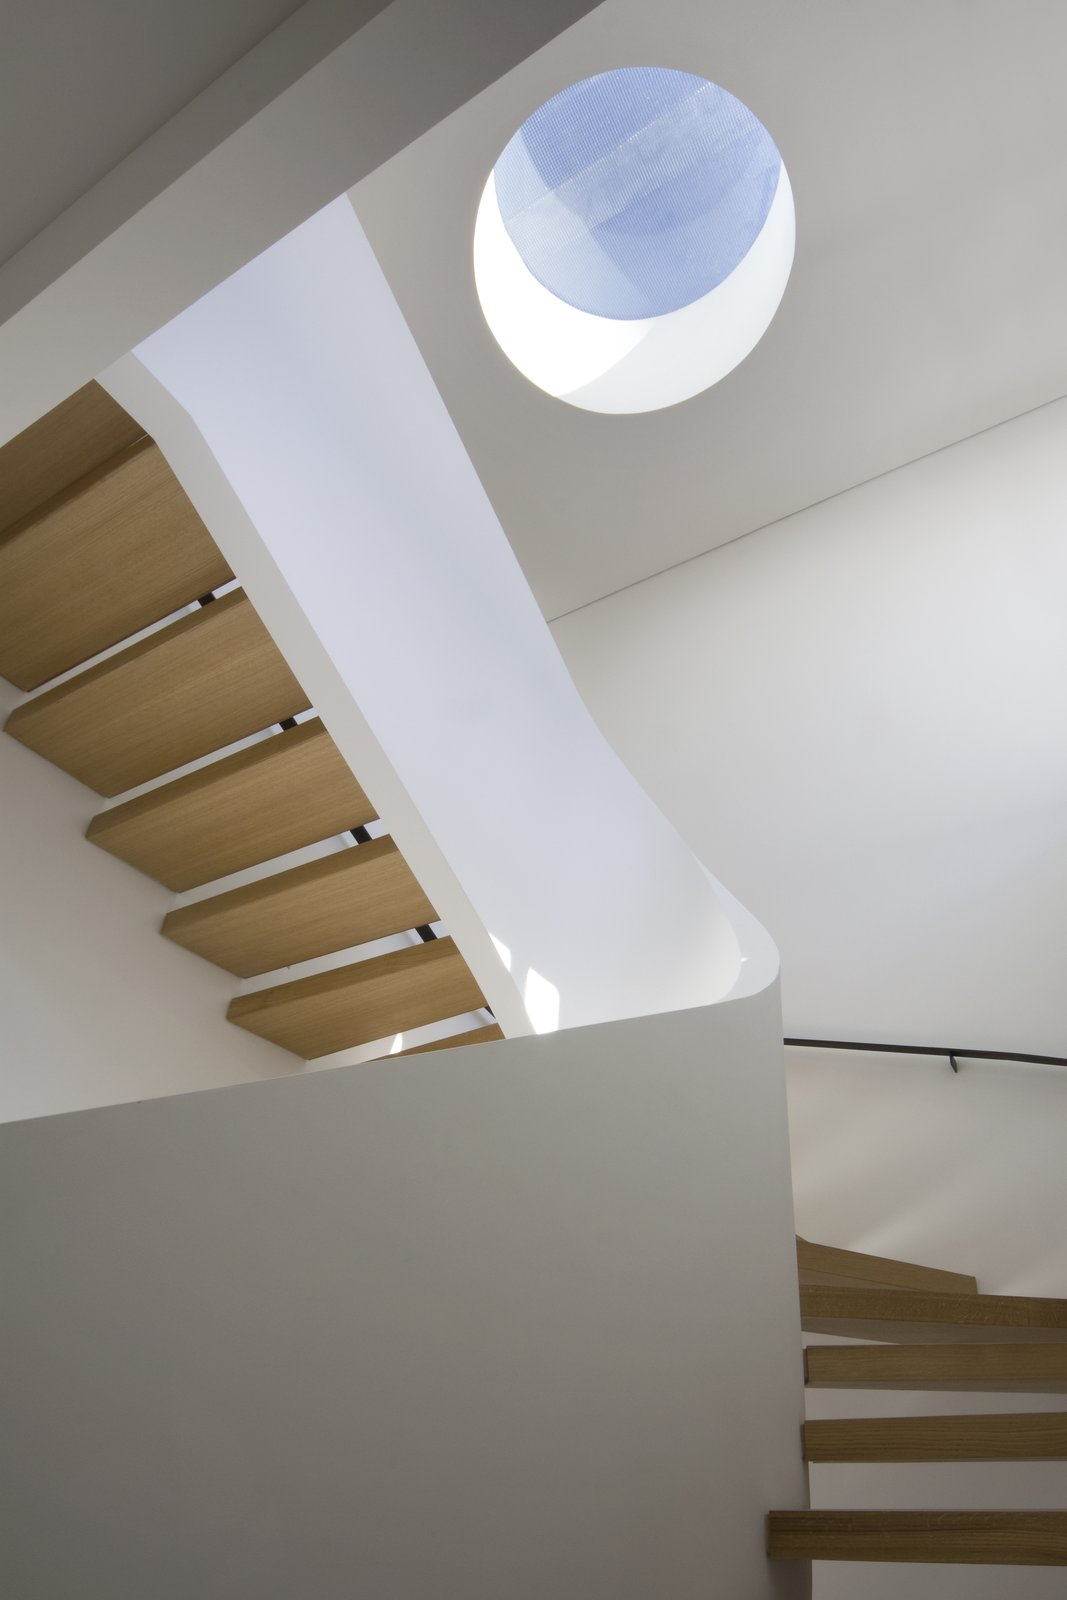 The architects added a small circular skylight to serve as a vertical focal point in the center of the fifth floor. The quarter-sawn white oak risers produce a beautiful rippled grain highlighted by the abundant natural light. Tagged: Skylight Window Type, Staircase, and Wood Tread.  Photo 7 of 13 in 5 Architectural Tricks and Devices to Bring Natural Light Into Your Home from White Oak